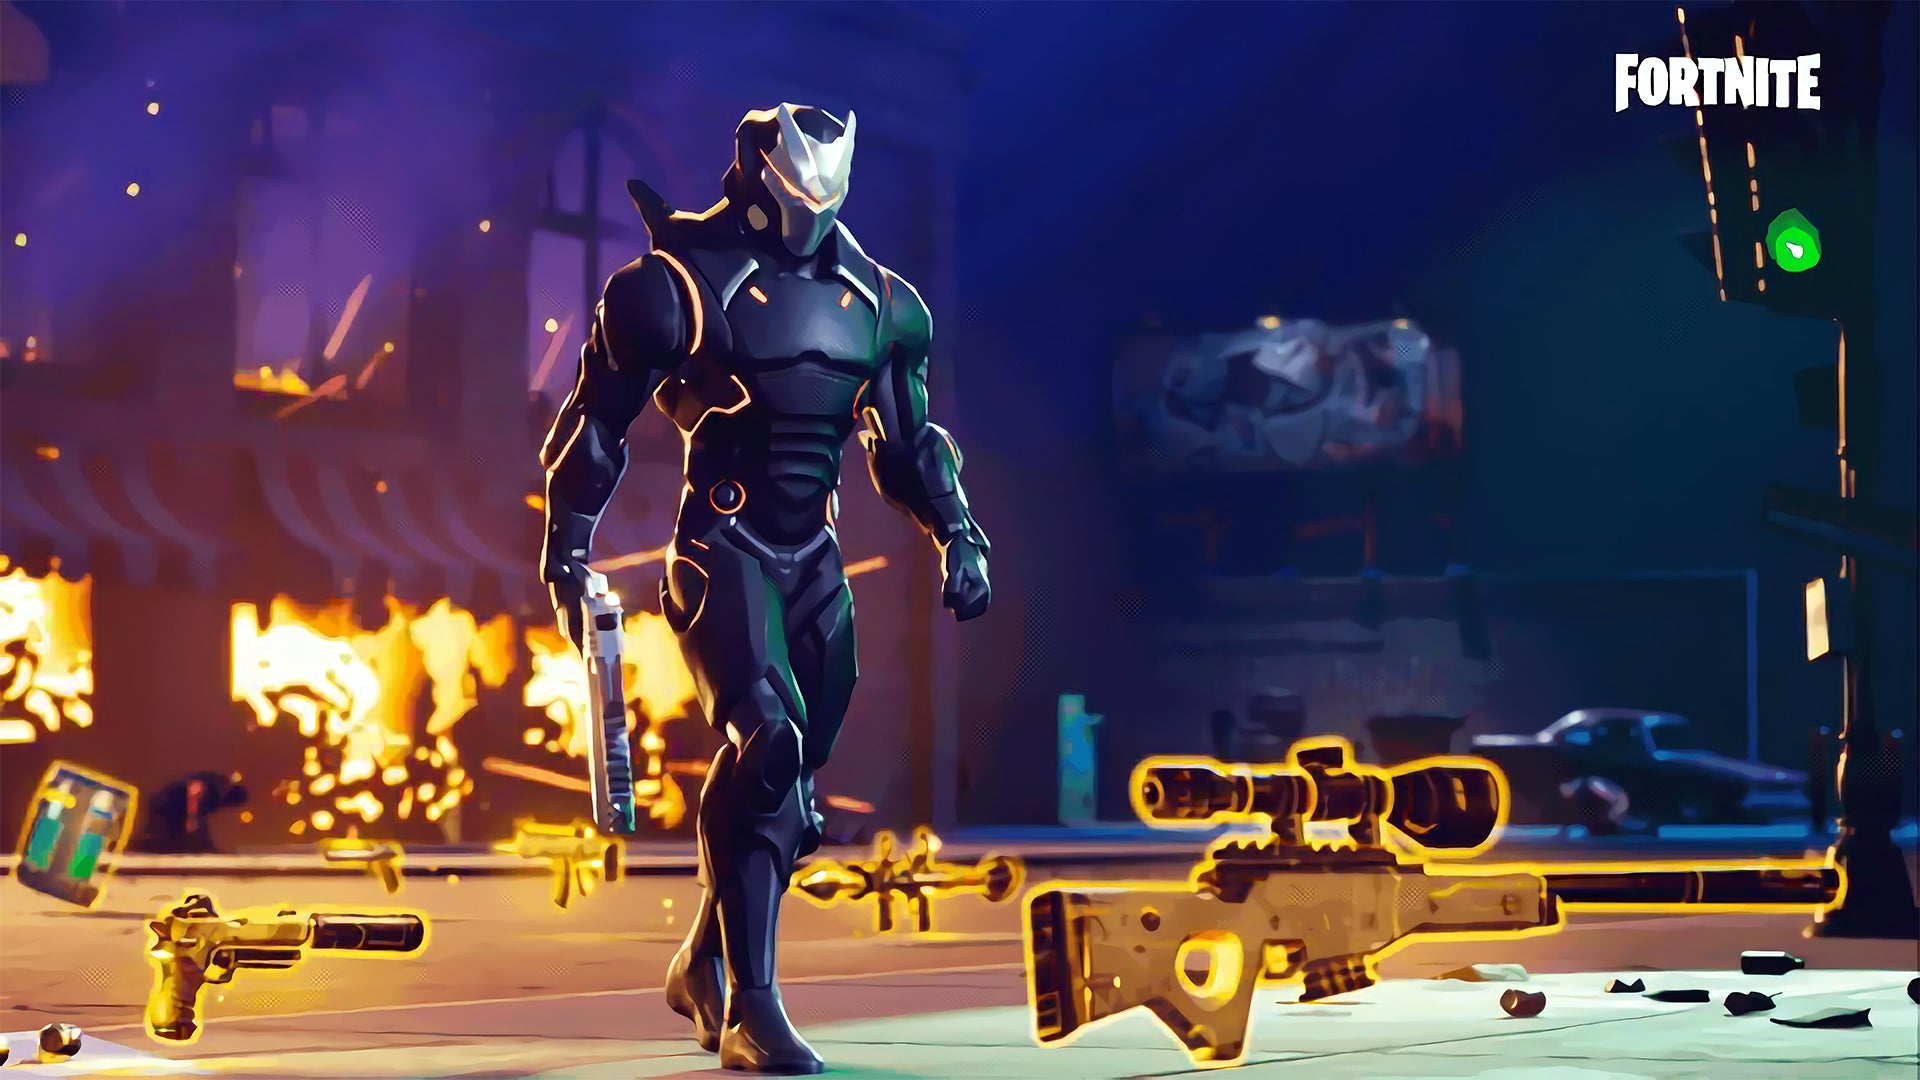 2019 Cool Fortnite Omega Wallpapers Hd Fortnite Costume For Kids